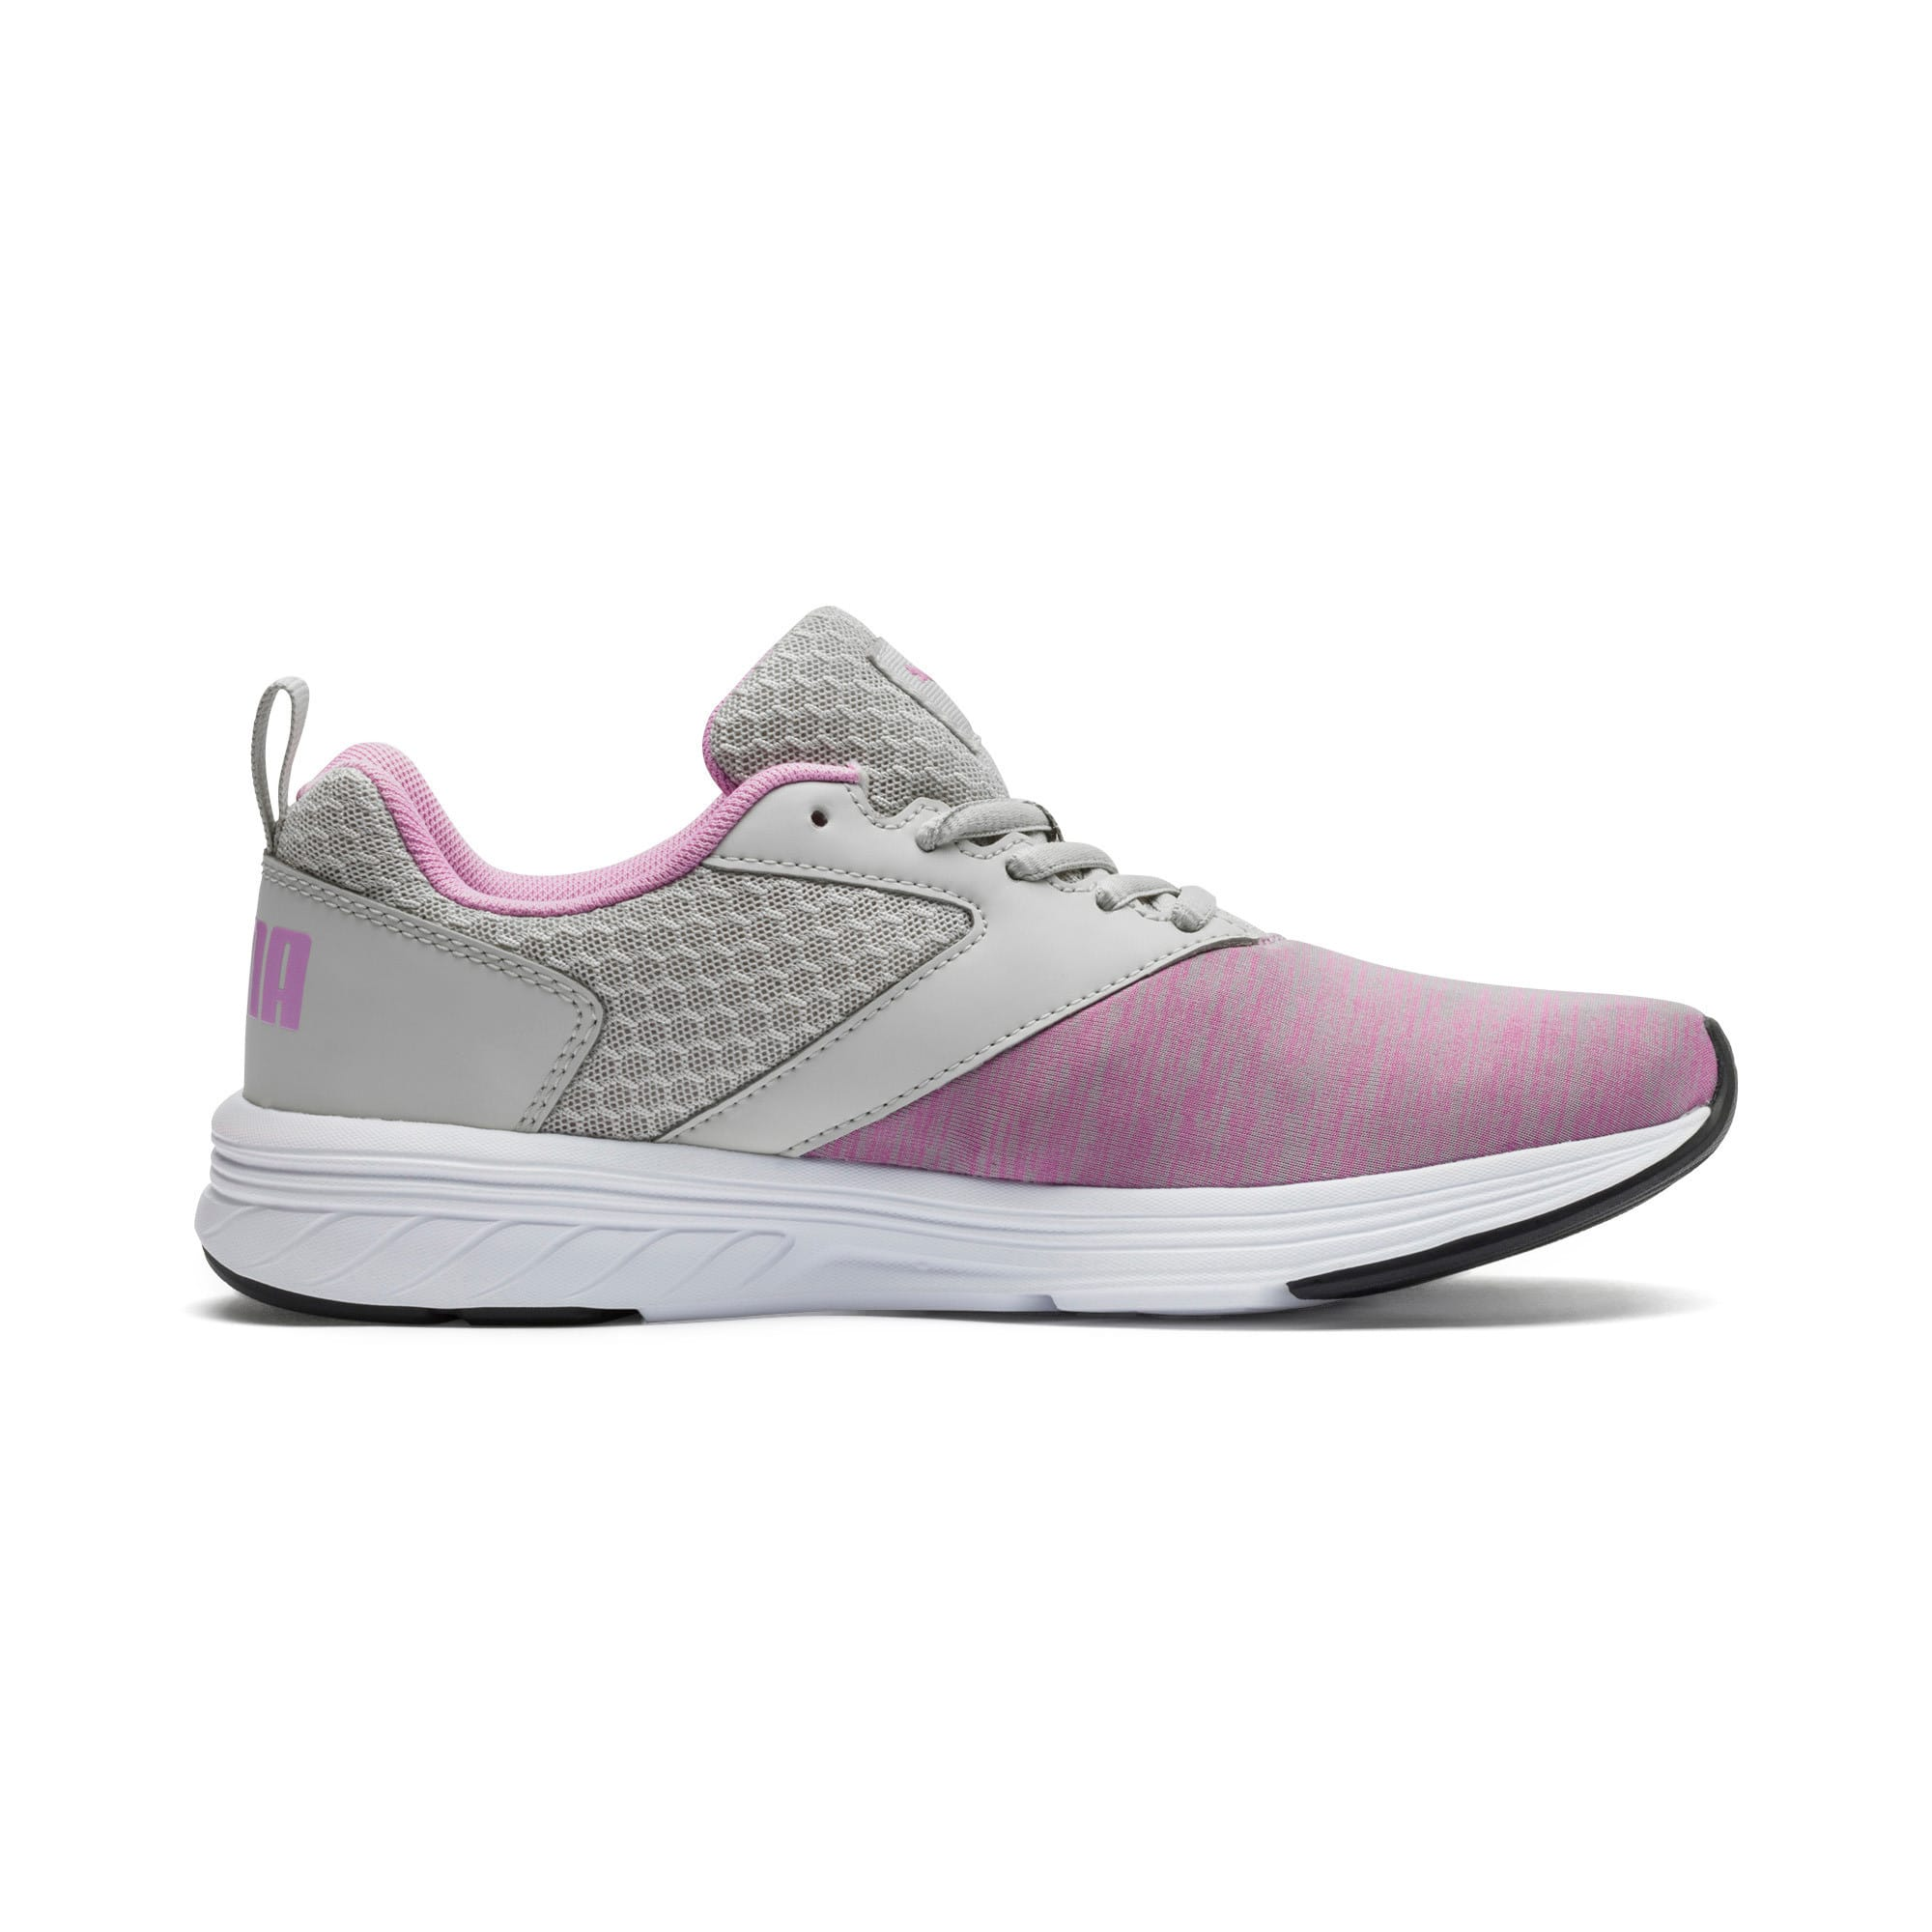 Thumbnail 5 of NRGY Comet Kids' Training Shoes, Gray Violet-Orchid, medium-IND